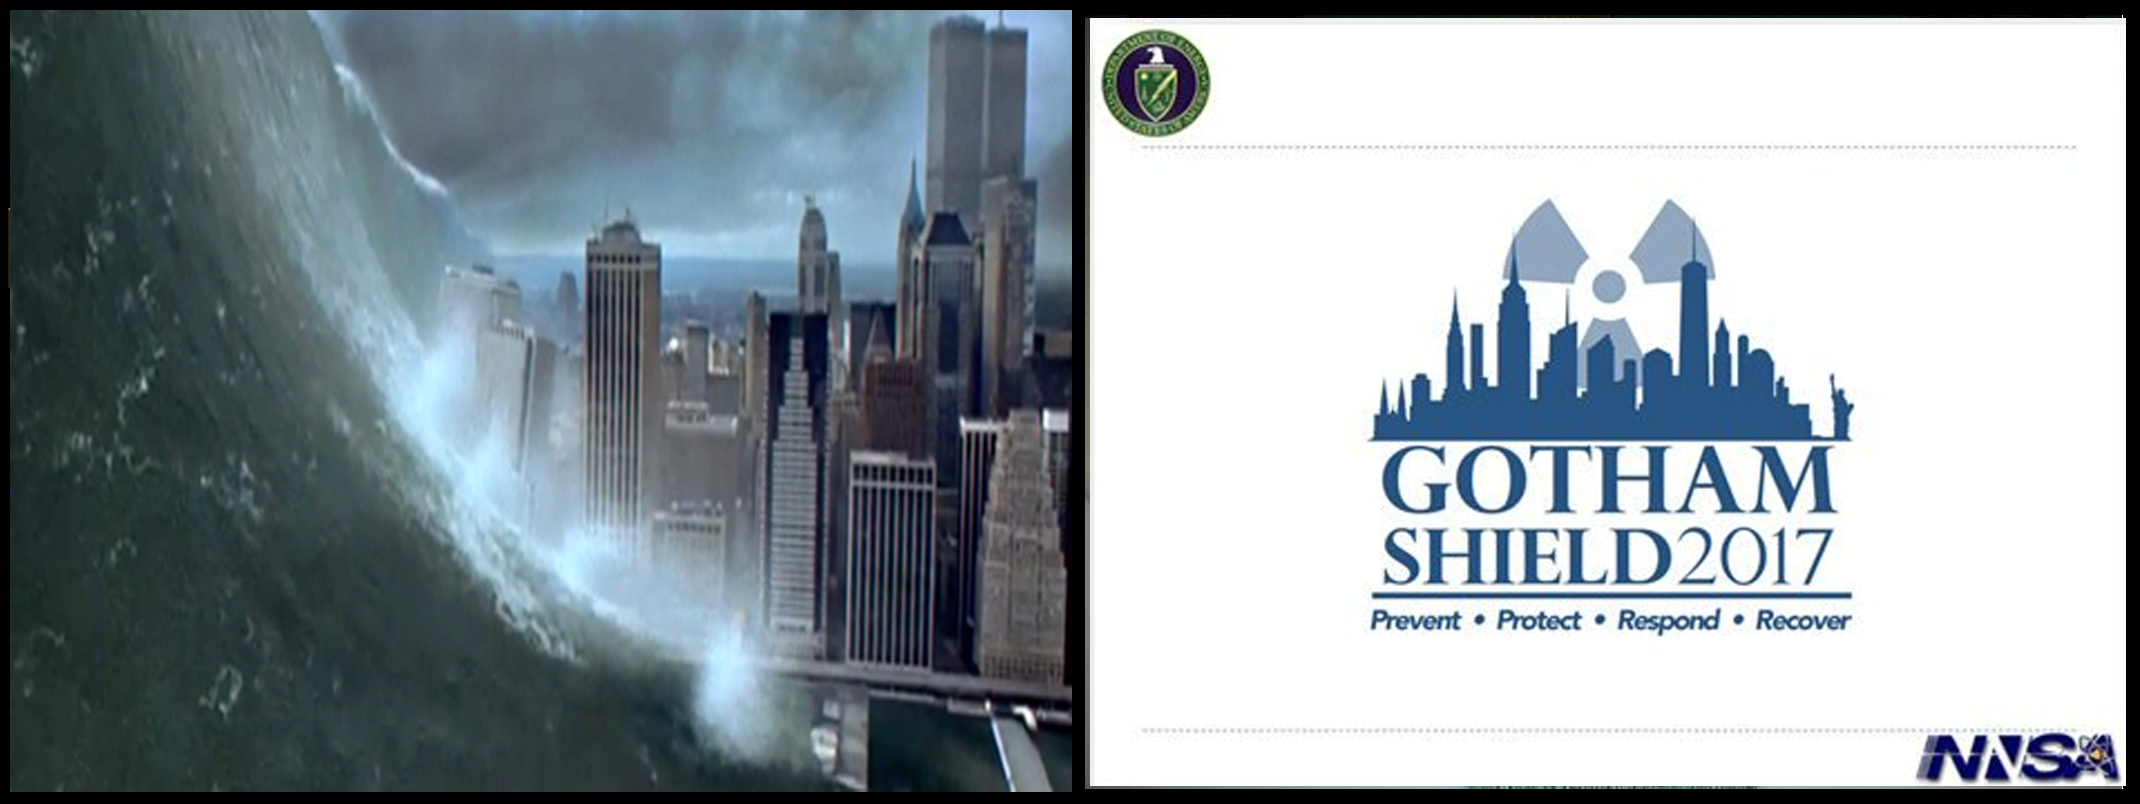 Red Alert! Gotham Shield Prelude to $100 NYC Nuclear Tsunami